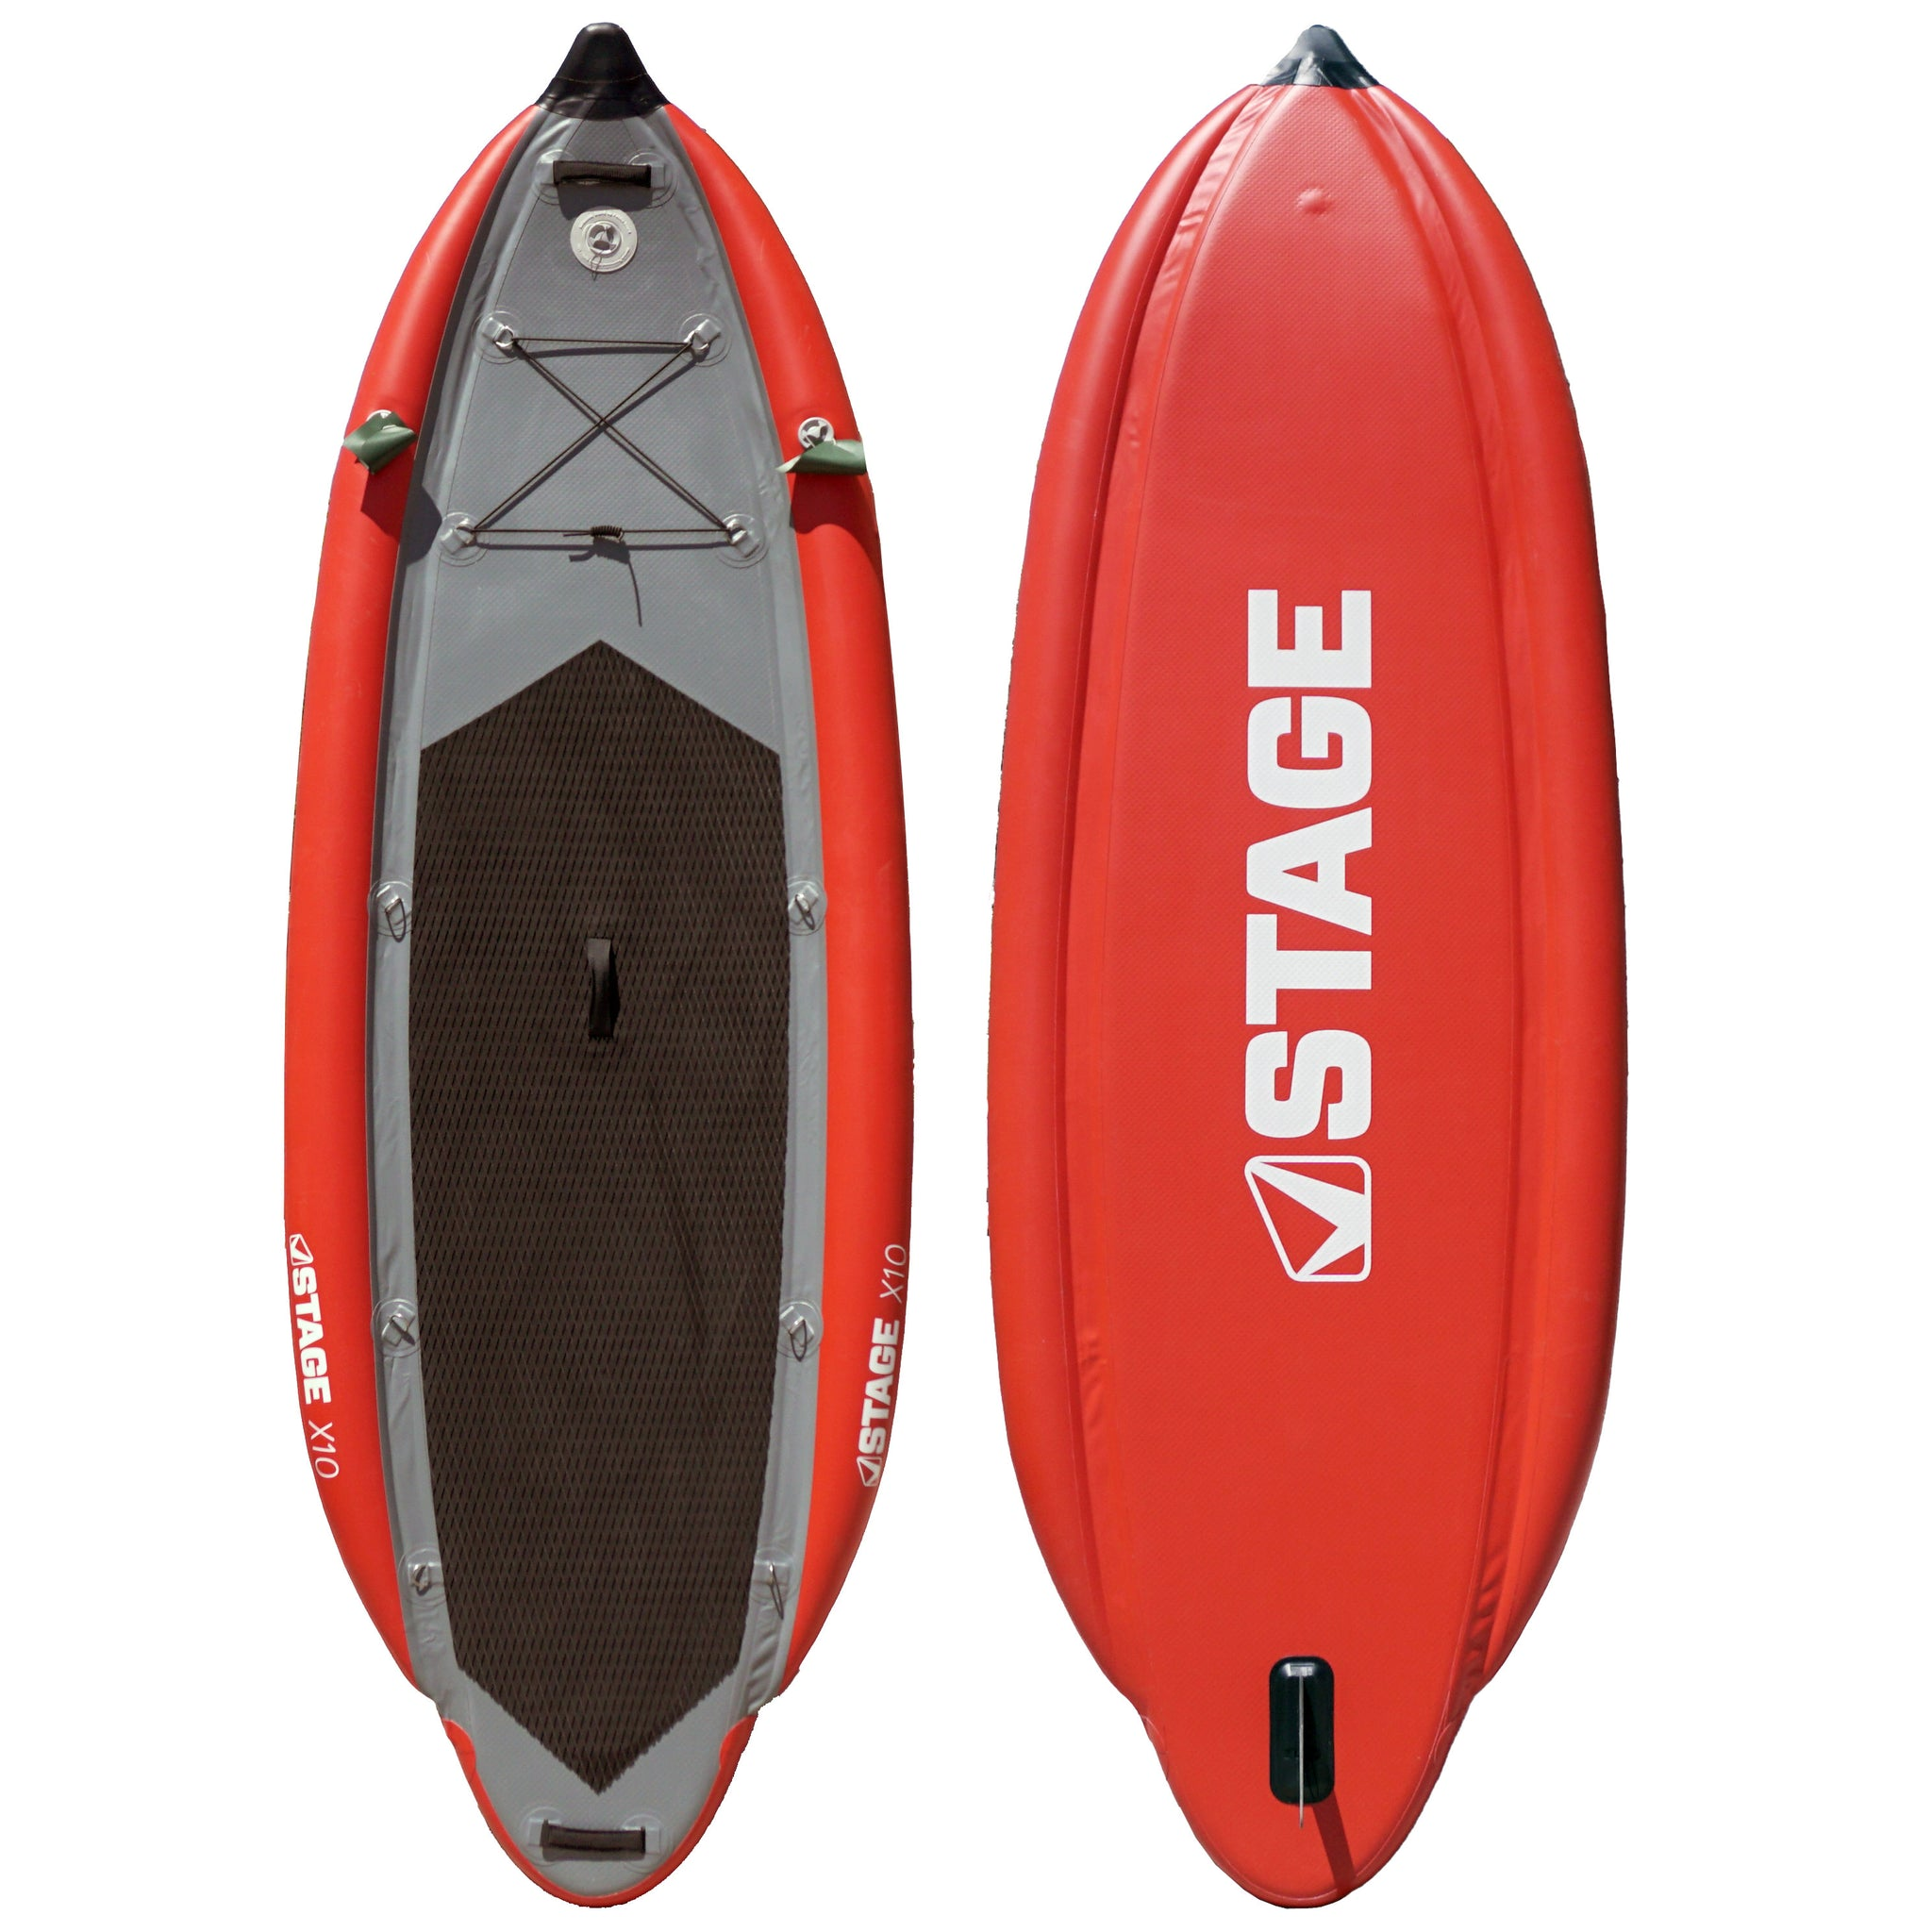 STAGE X10 Expedition SUP